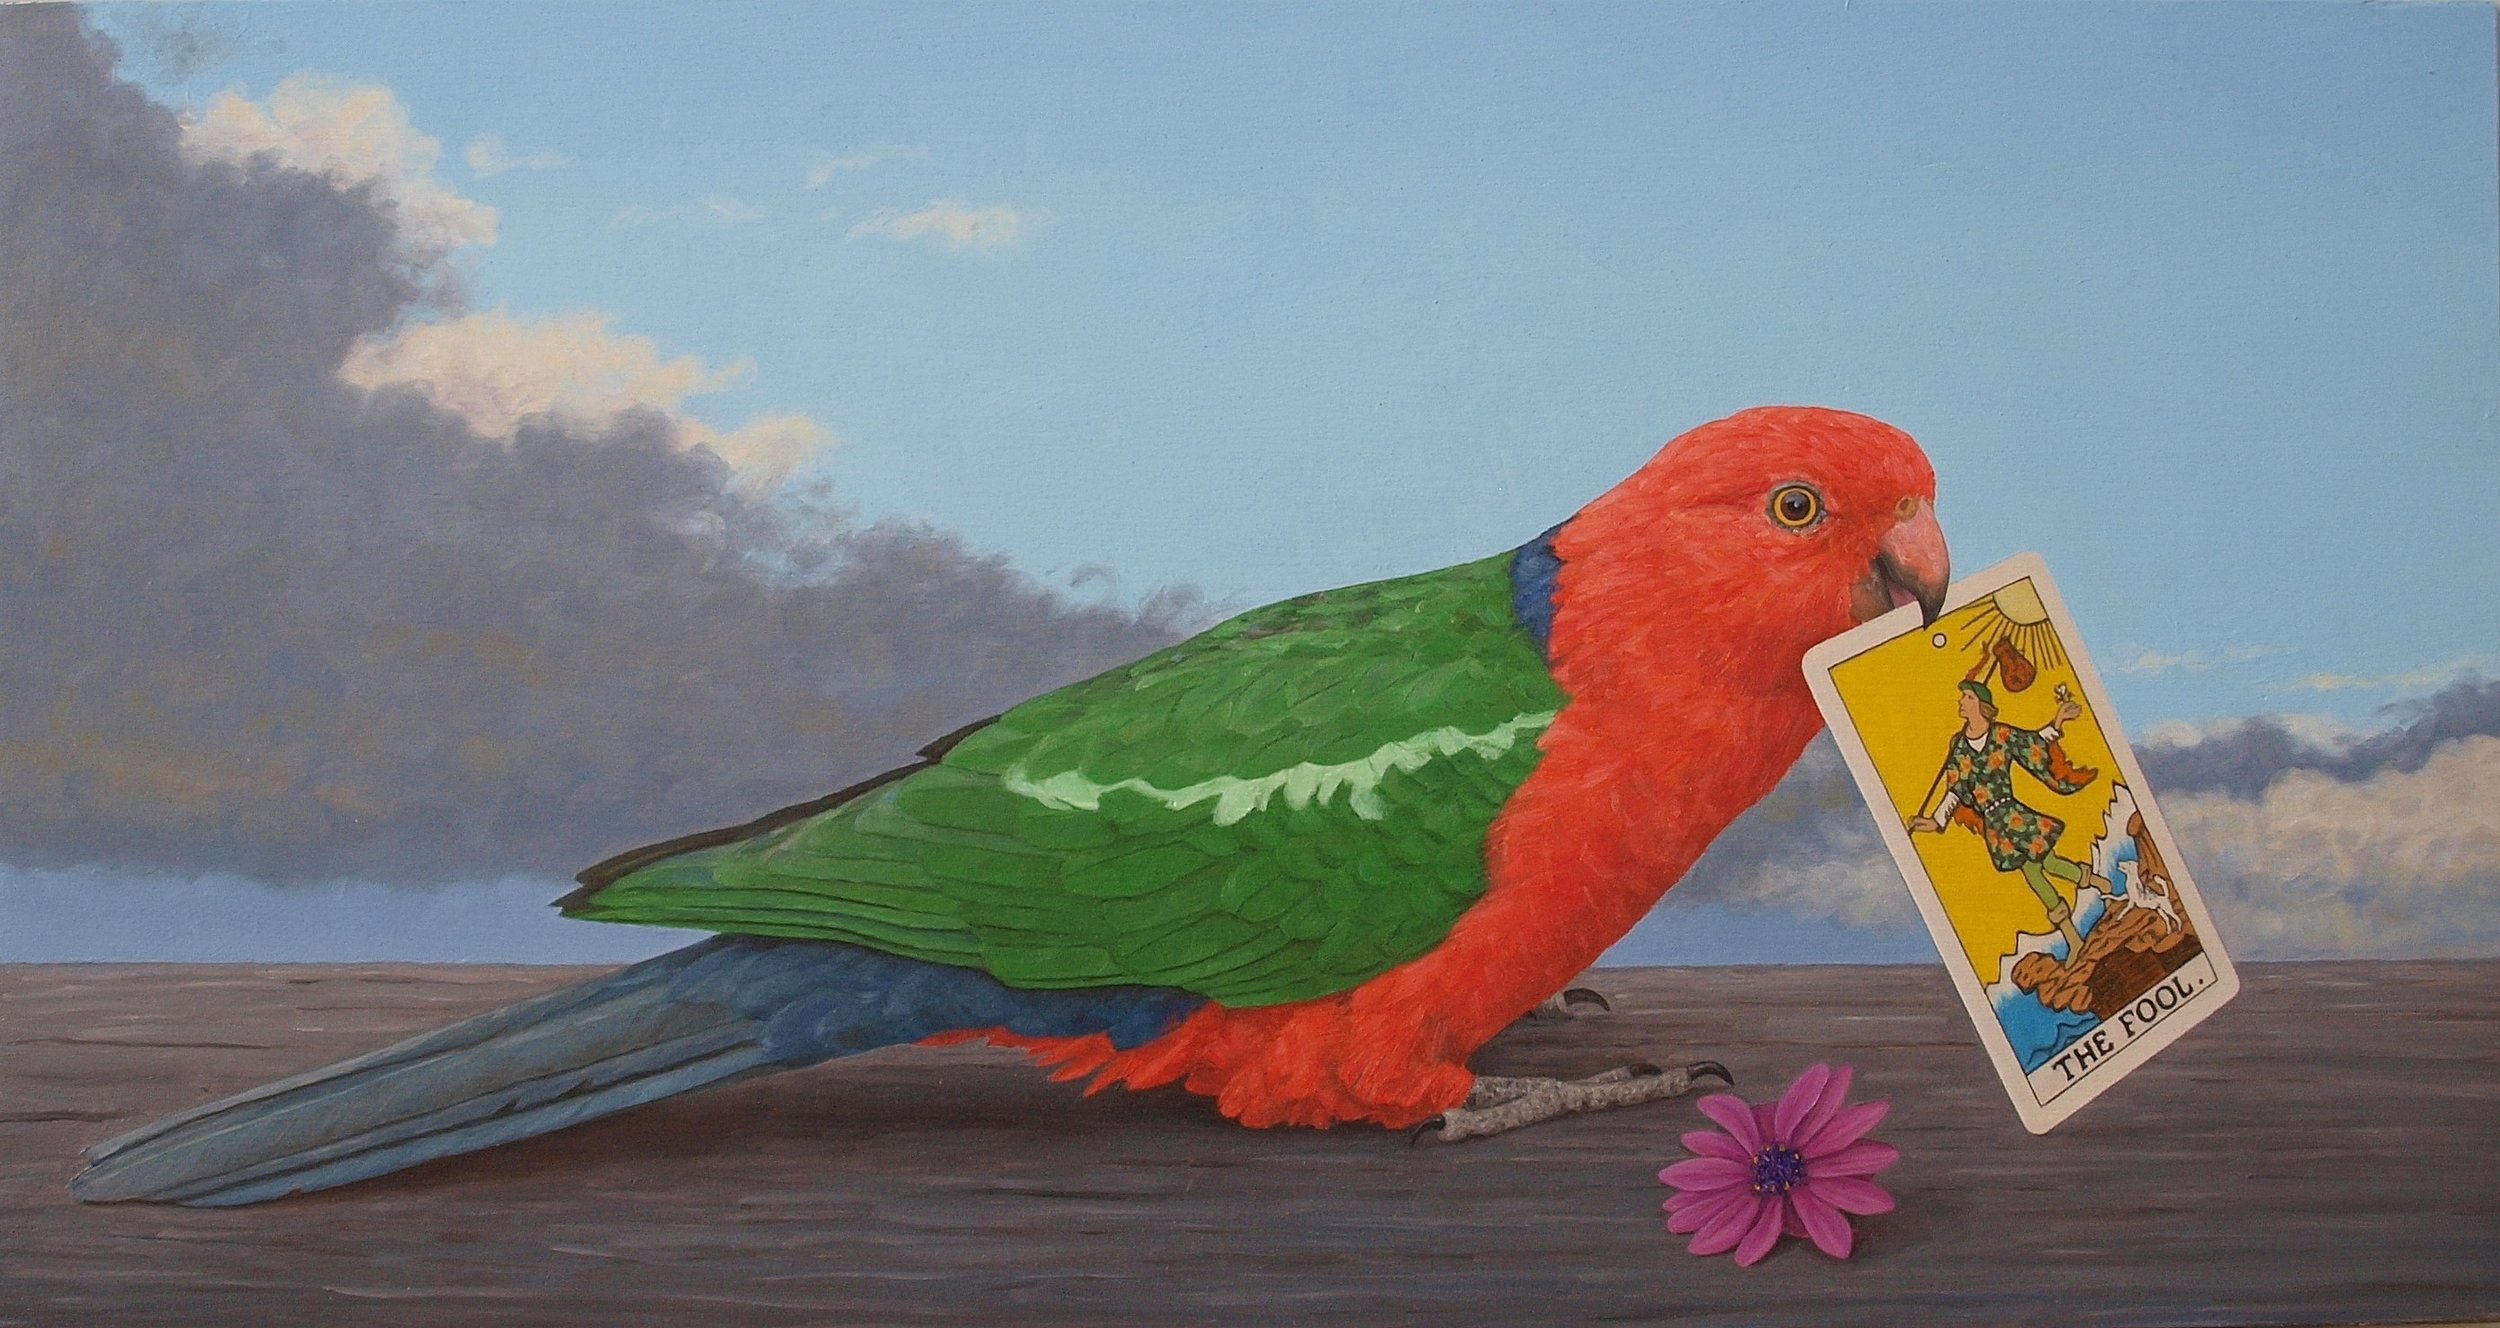 King Parrot and the Fool